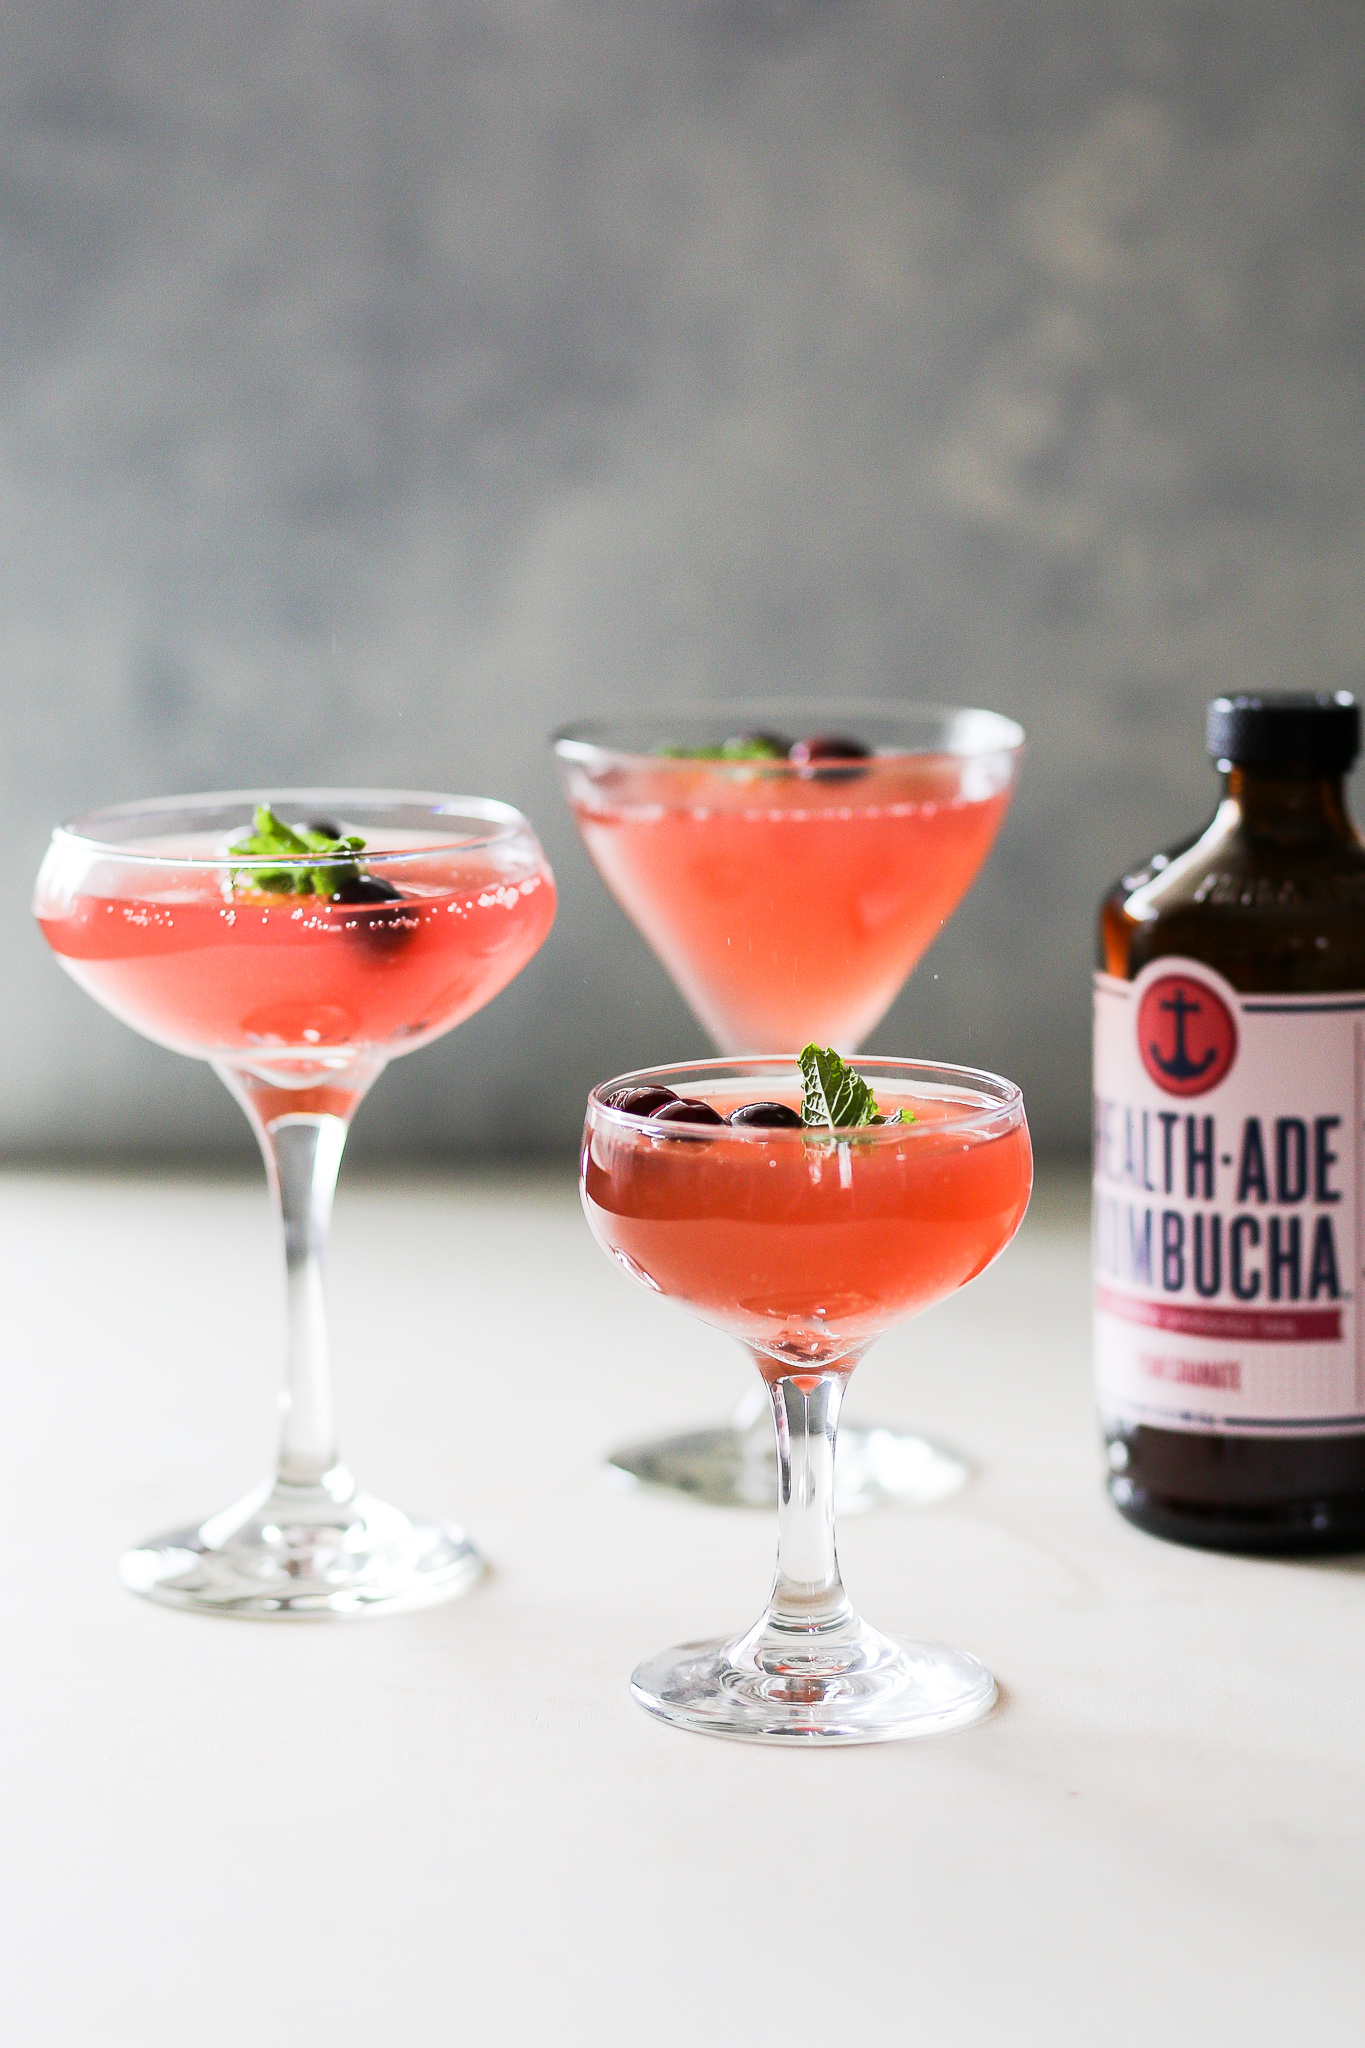 Spiced Kombucha Rum Punch | Set the Table #kombucha #followyourgut #ad #cocktail #recipe #mocktail #holidaycocktail